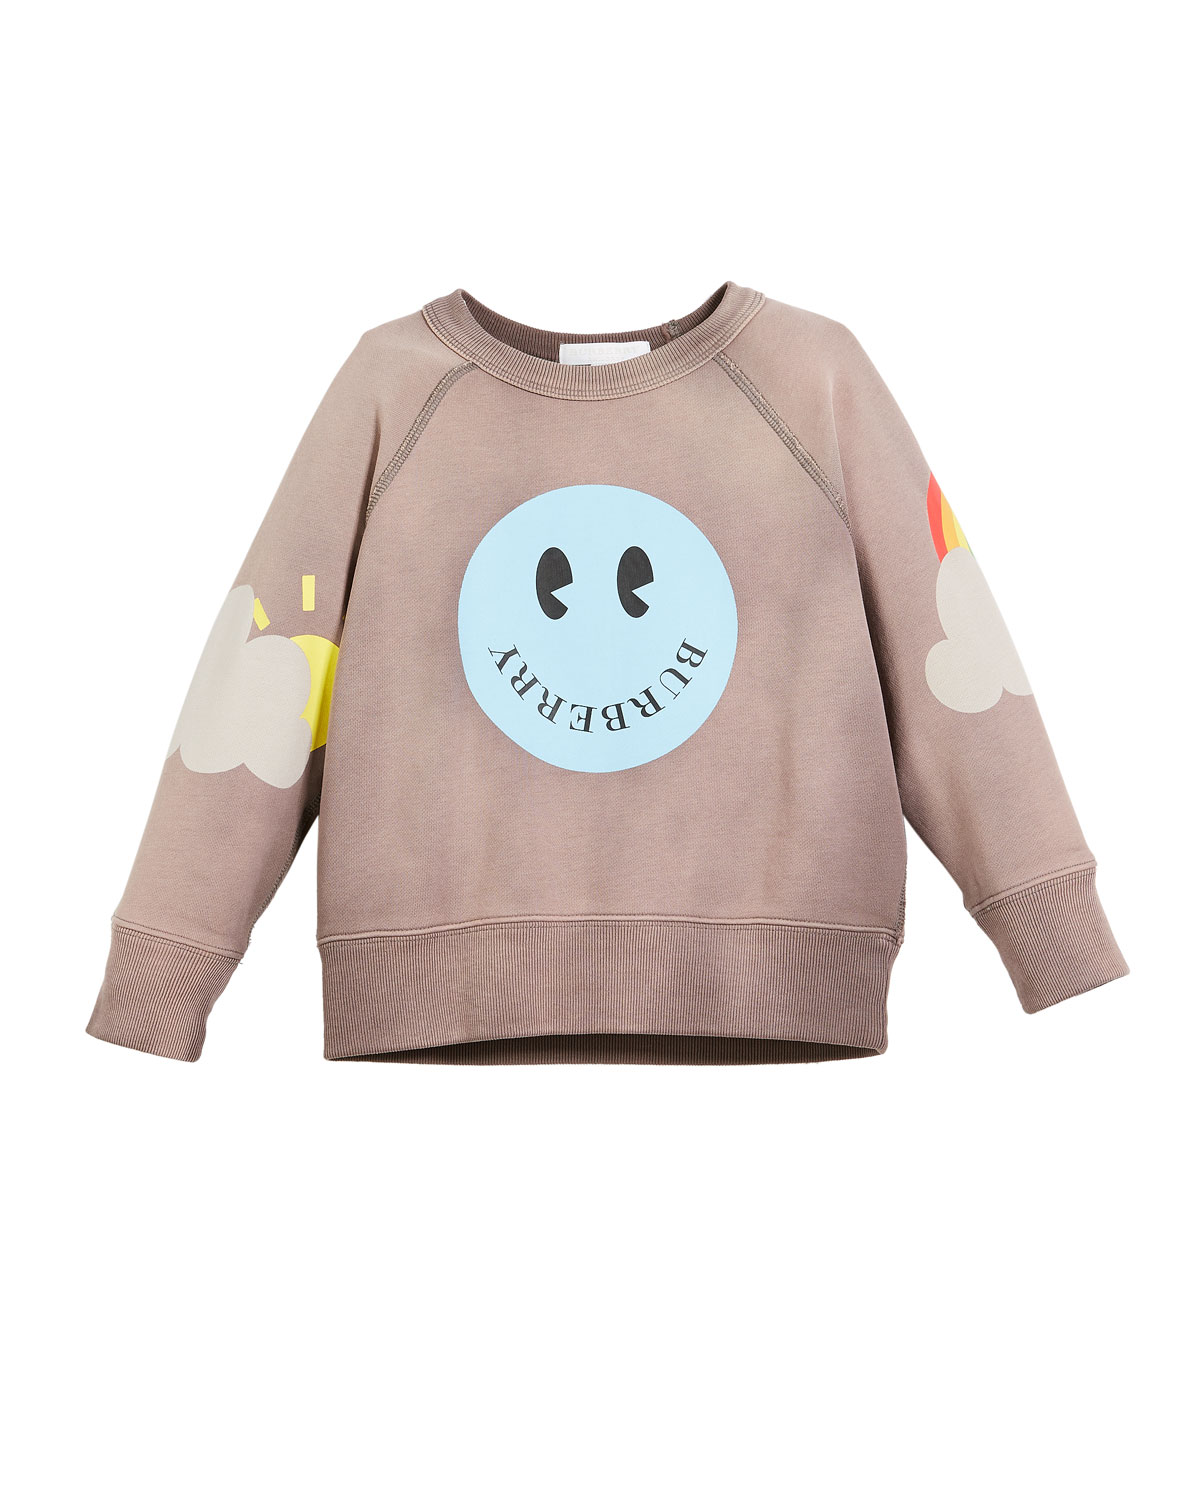 Smiley Graphic Shirt, Size 4-14